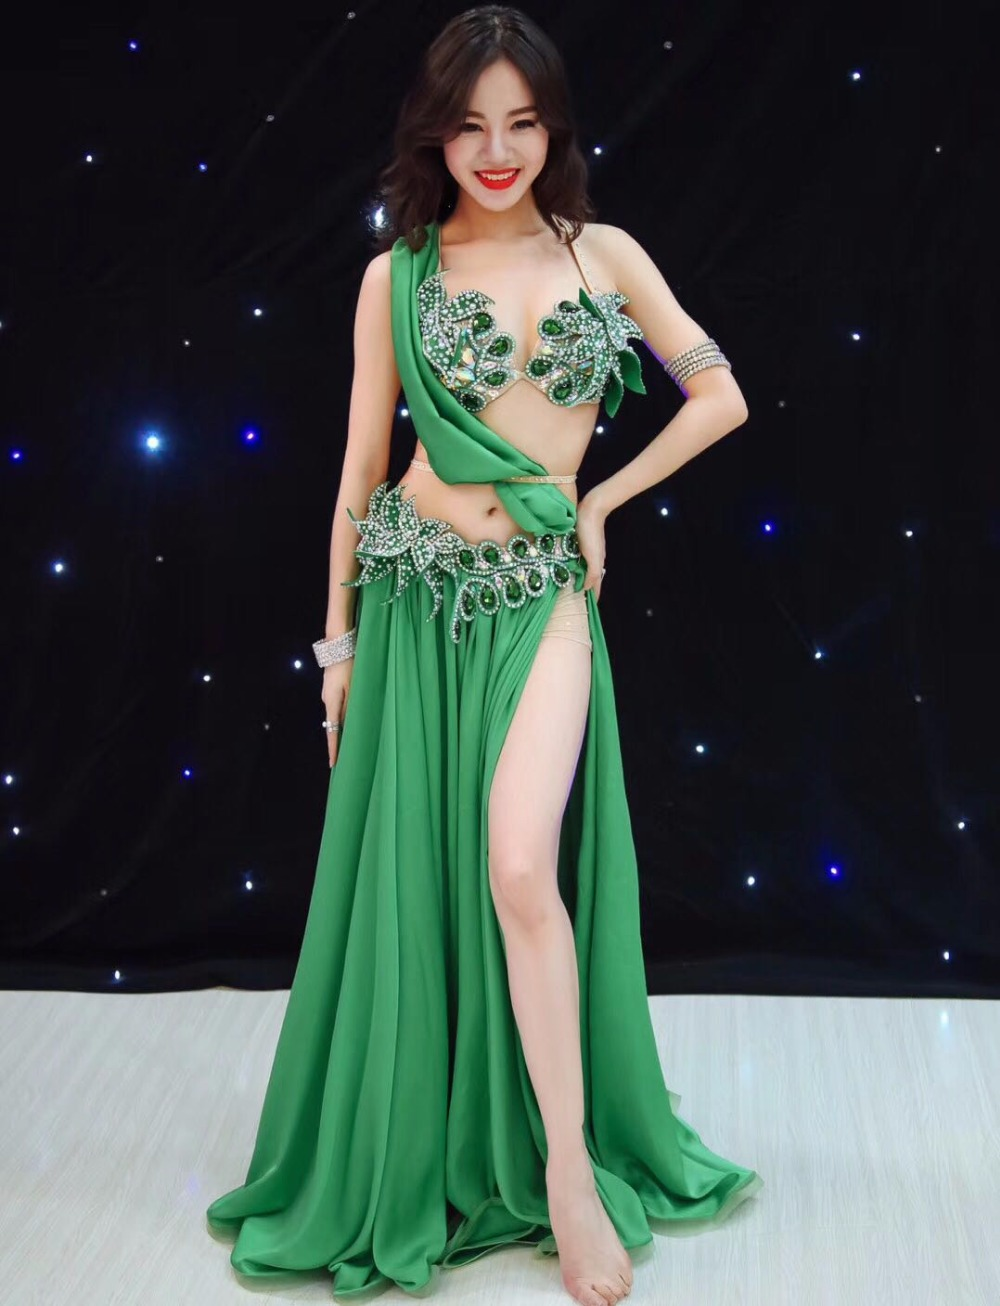 Belly Dance Clothes Green Bra Top+Skirt Girls Belly Dance Set Ballroom Dance Suit For Girls Dance Wear S,M,L,Top,Skirt Costumes white top my 2nd st patrick day clover green bling sequins girls skirt set 1 8y